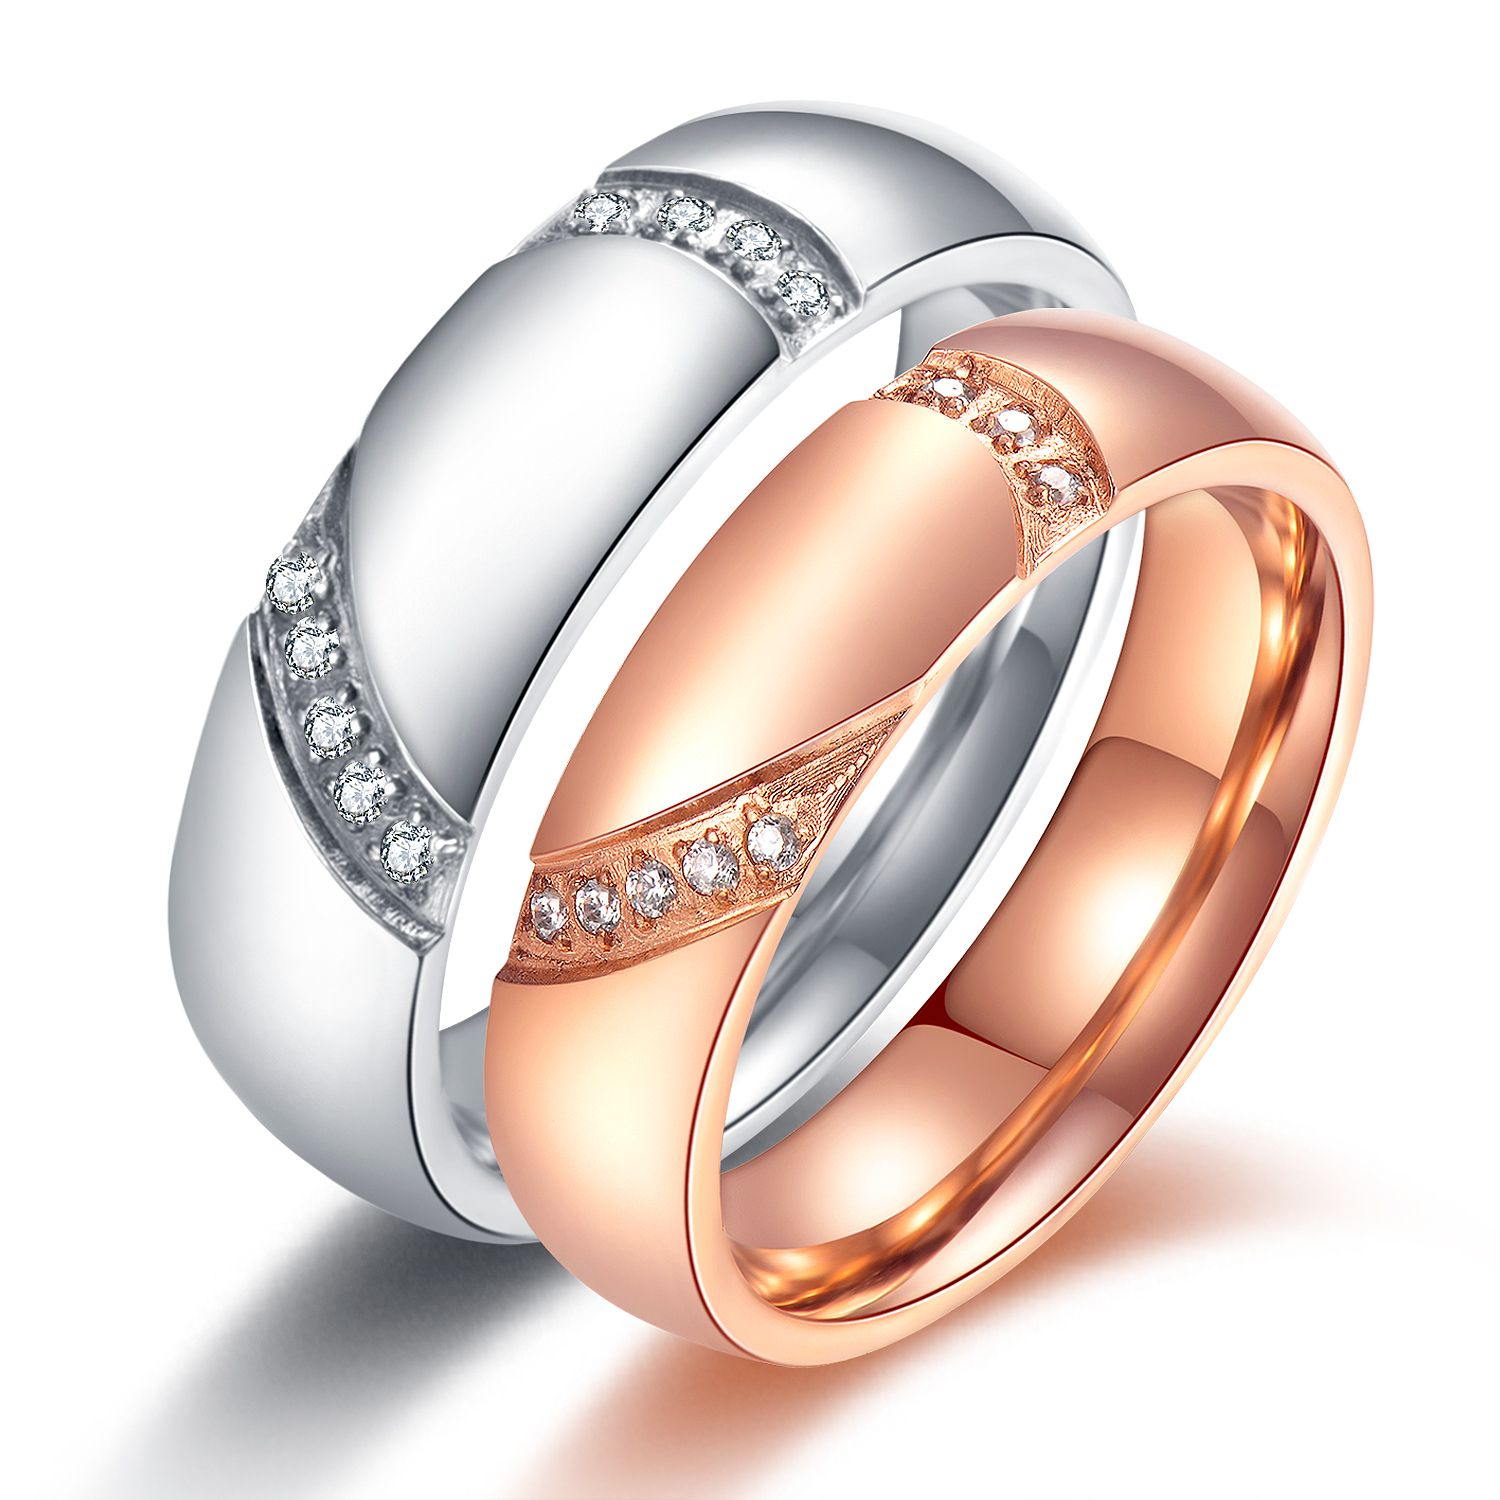 couple blog rings unconventional bands wedding engagement planyourwedding